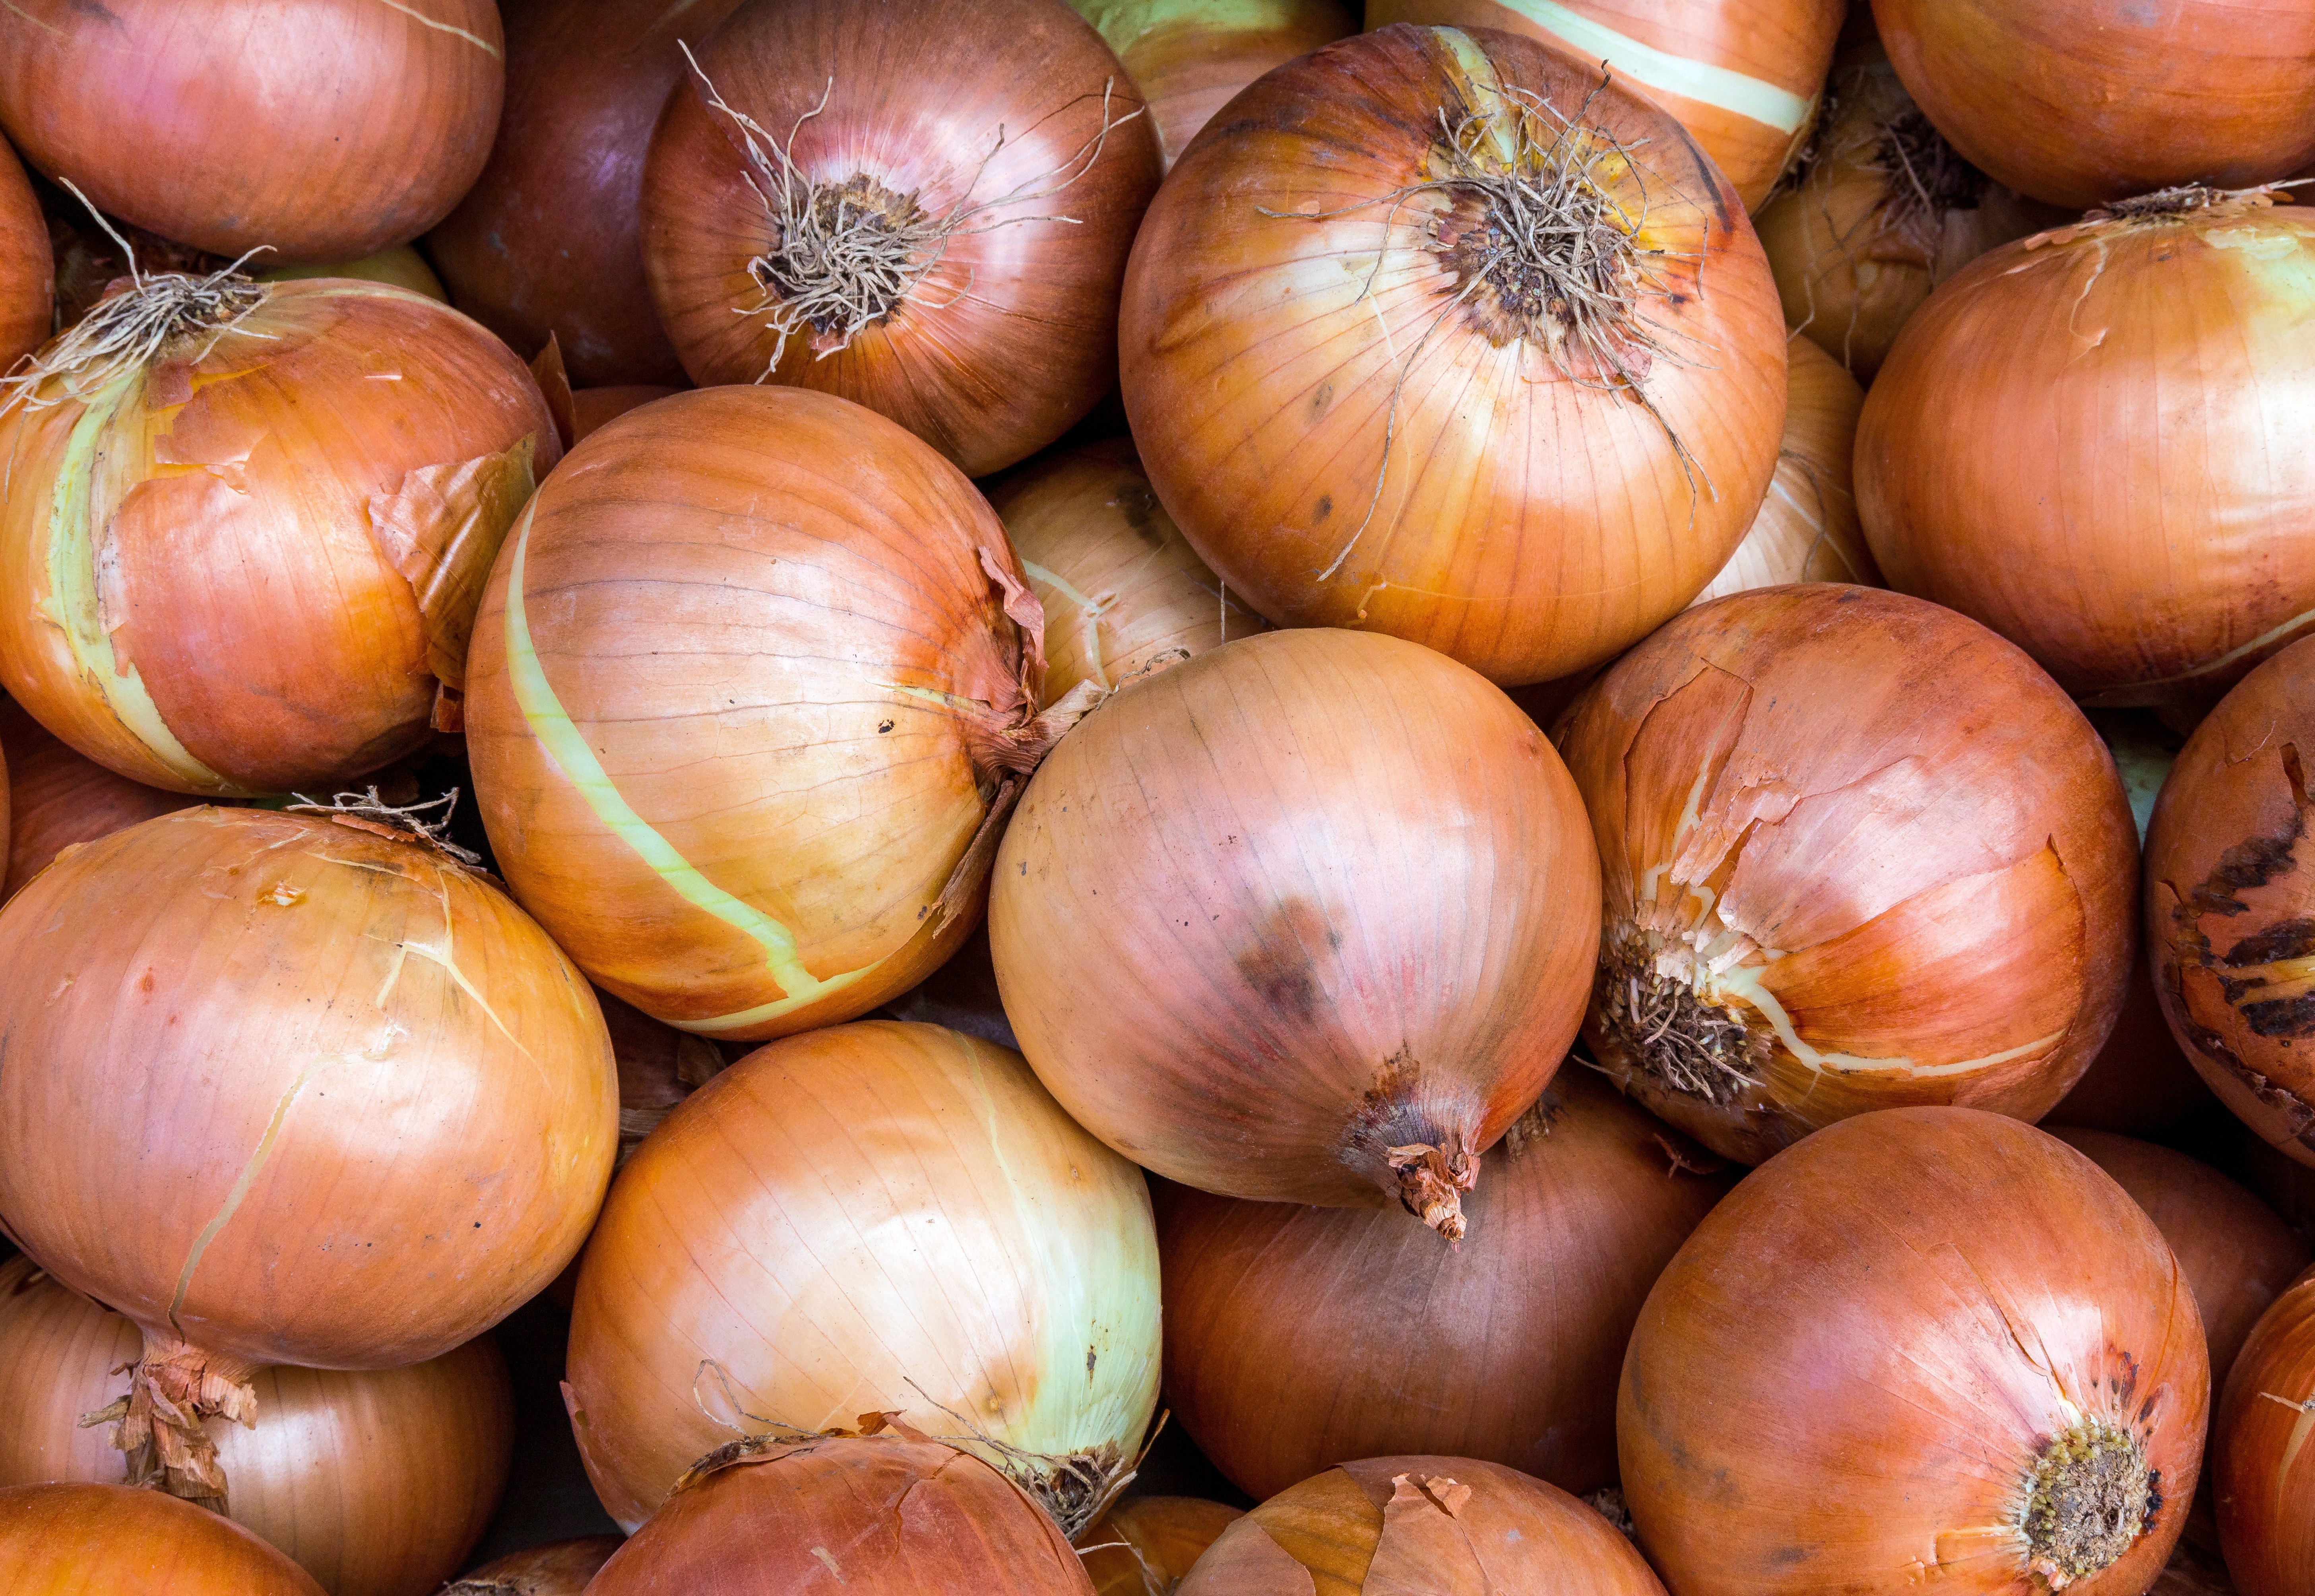 How to Grow Onions - Part 1